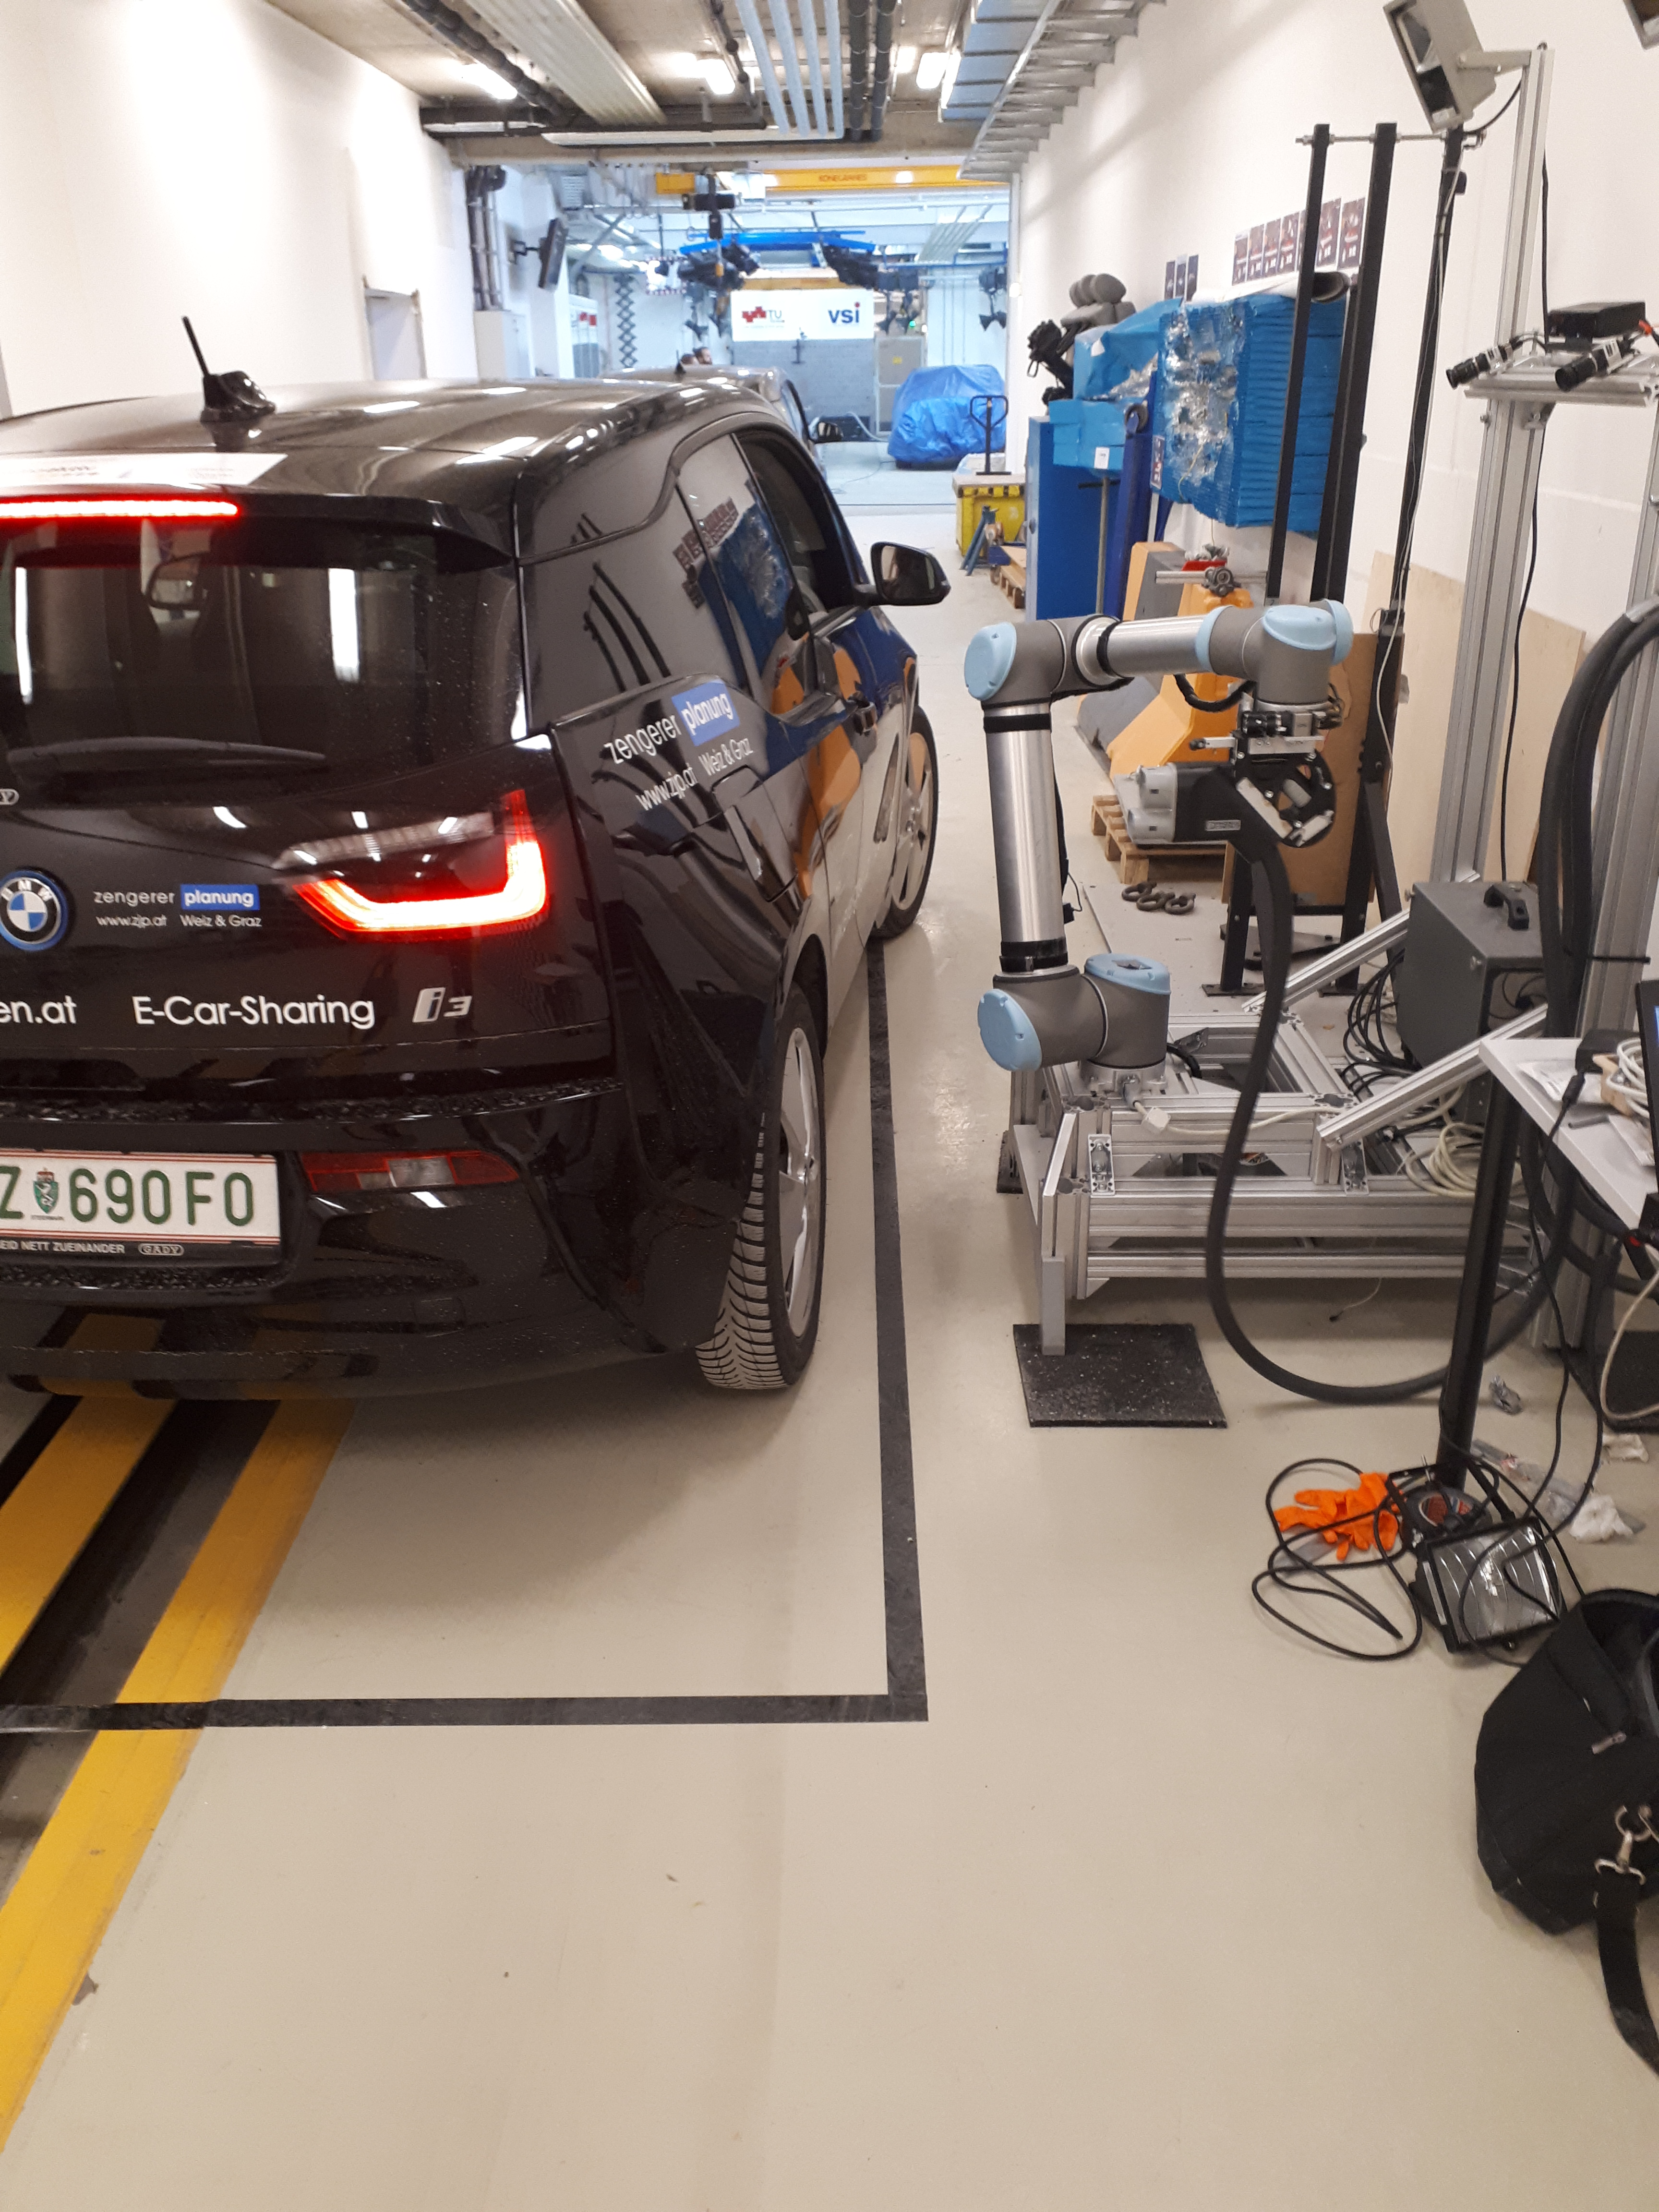 With The Robotics But Programming And Integration Of Sensor Technology For Exact Position Type Recognition Vehicle Charging